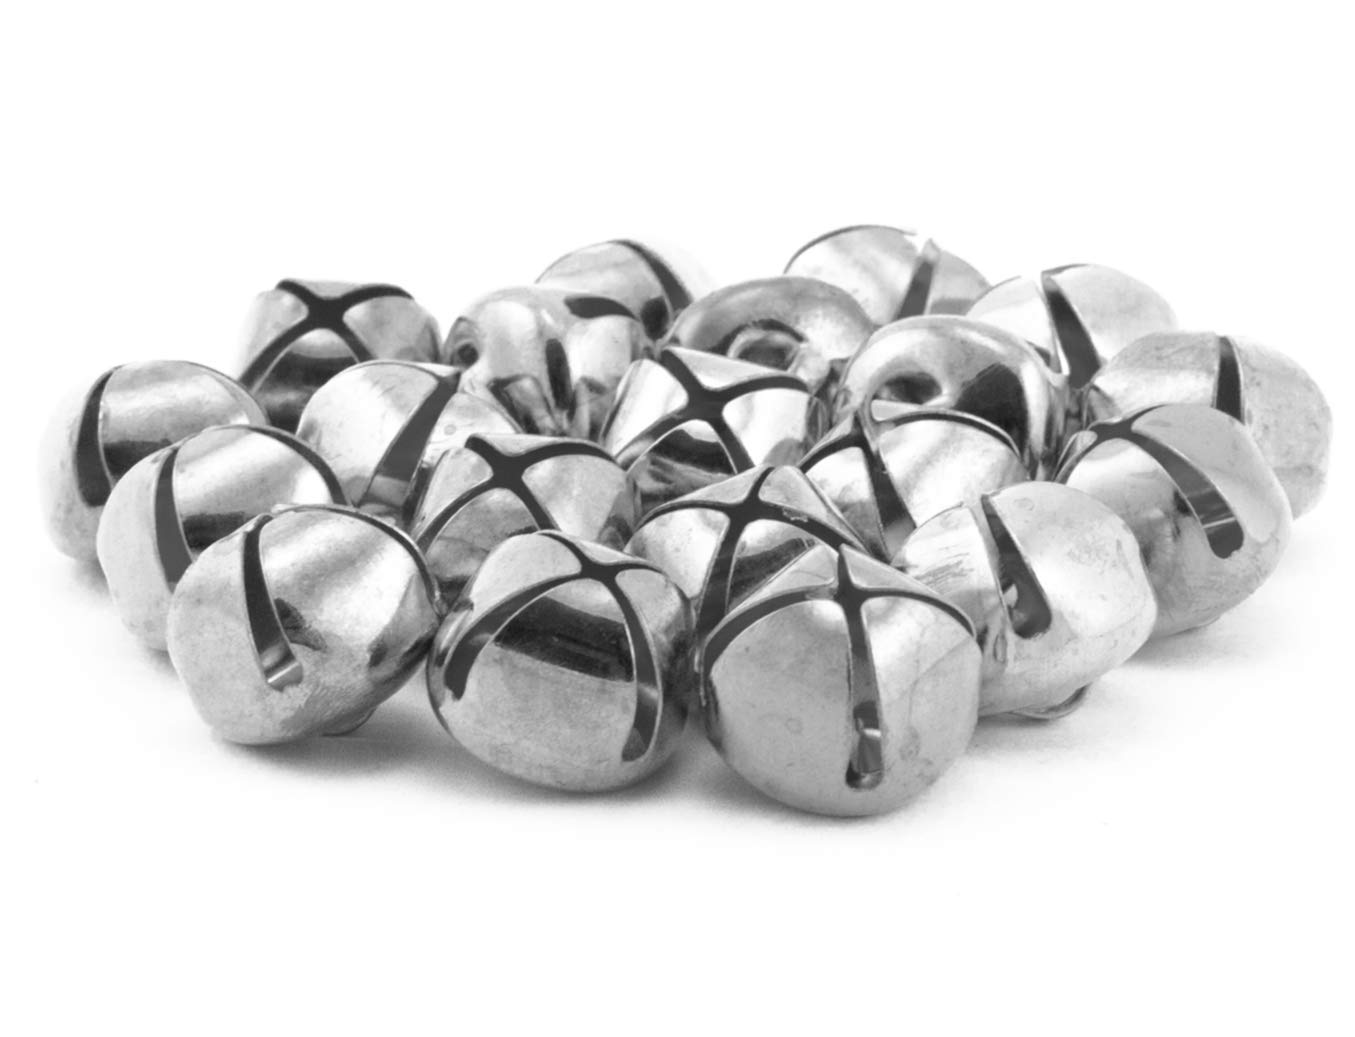 5//8 Inch 16mm Silver Craft Jingle Bells Charms Bulk Wholesale 100 Pieces